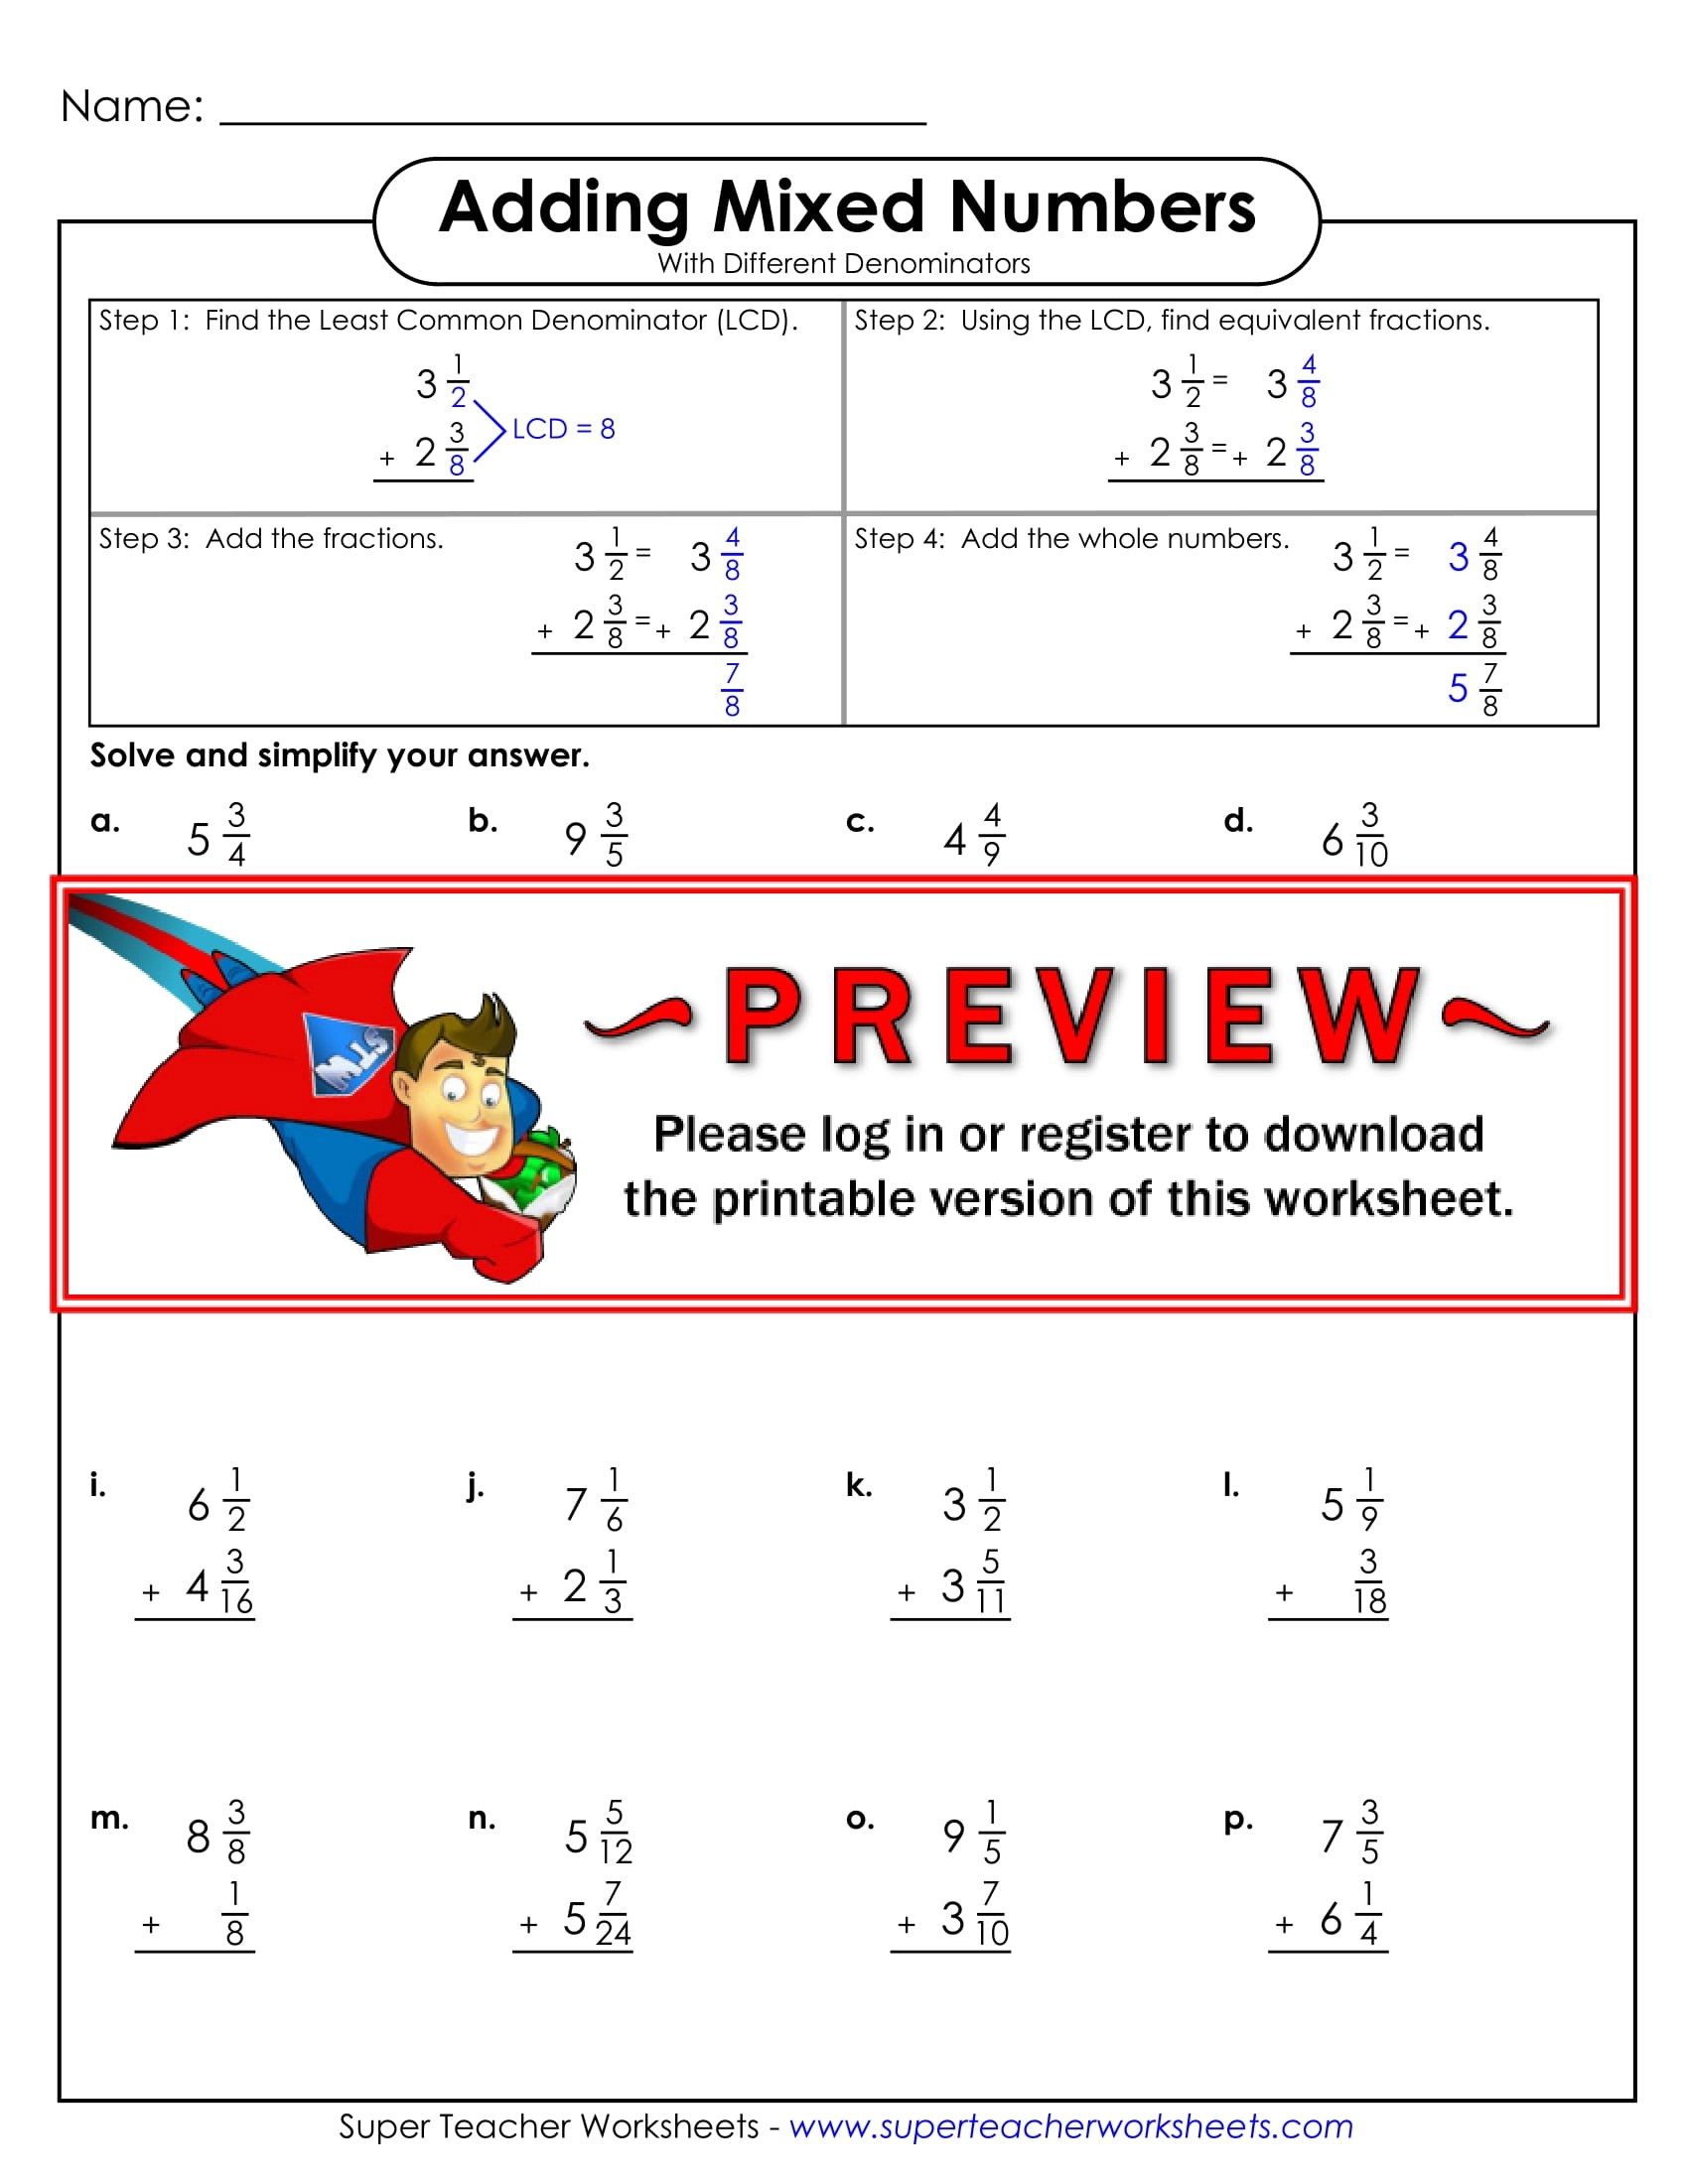 35 Adding Mixed Numbers Worksheet